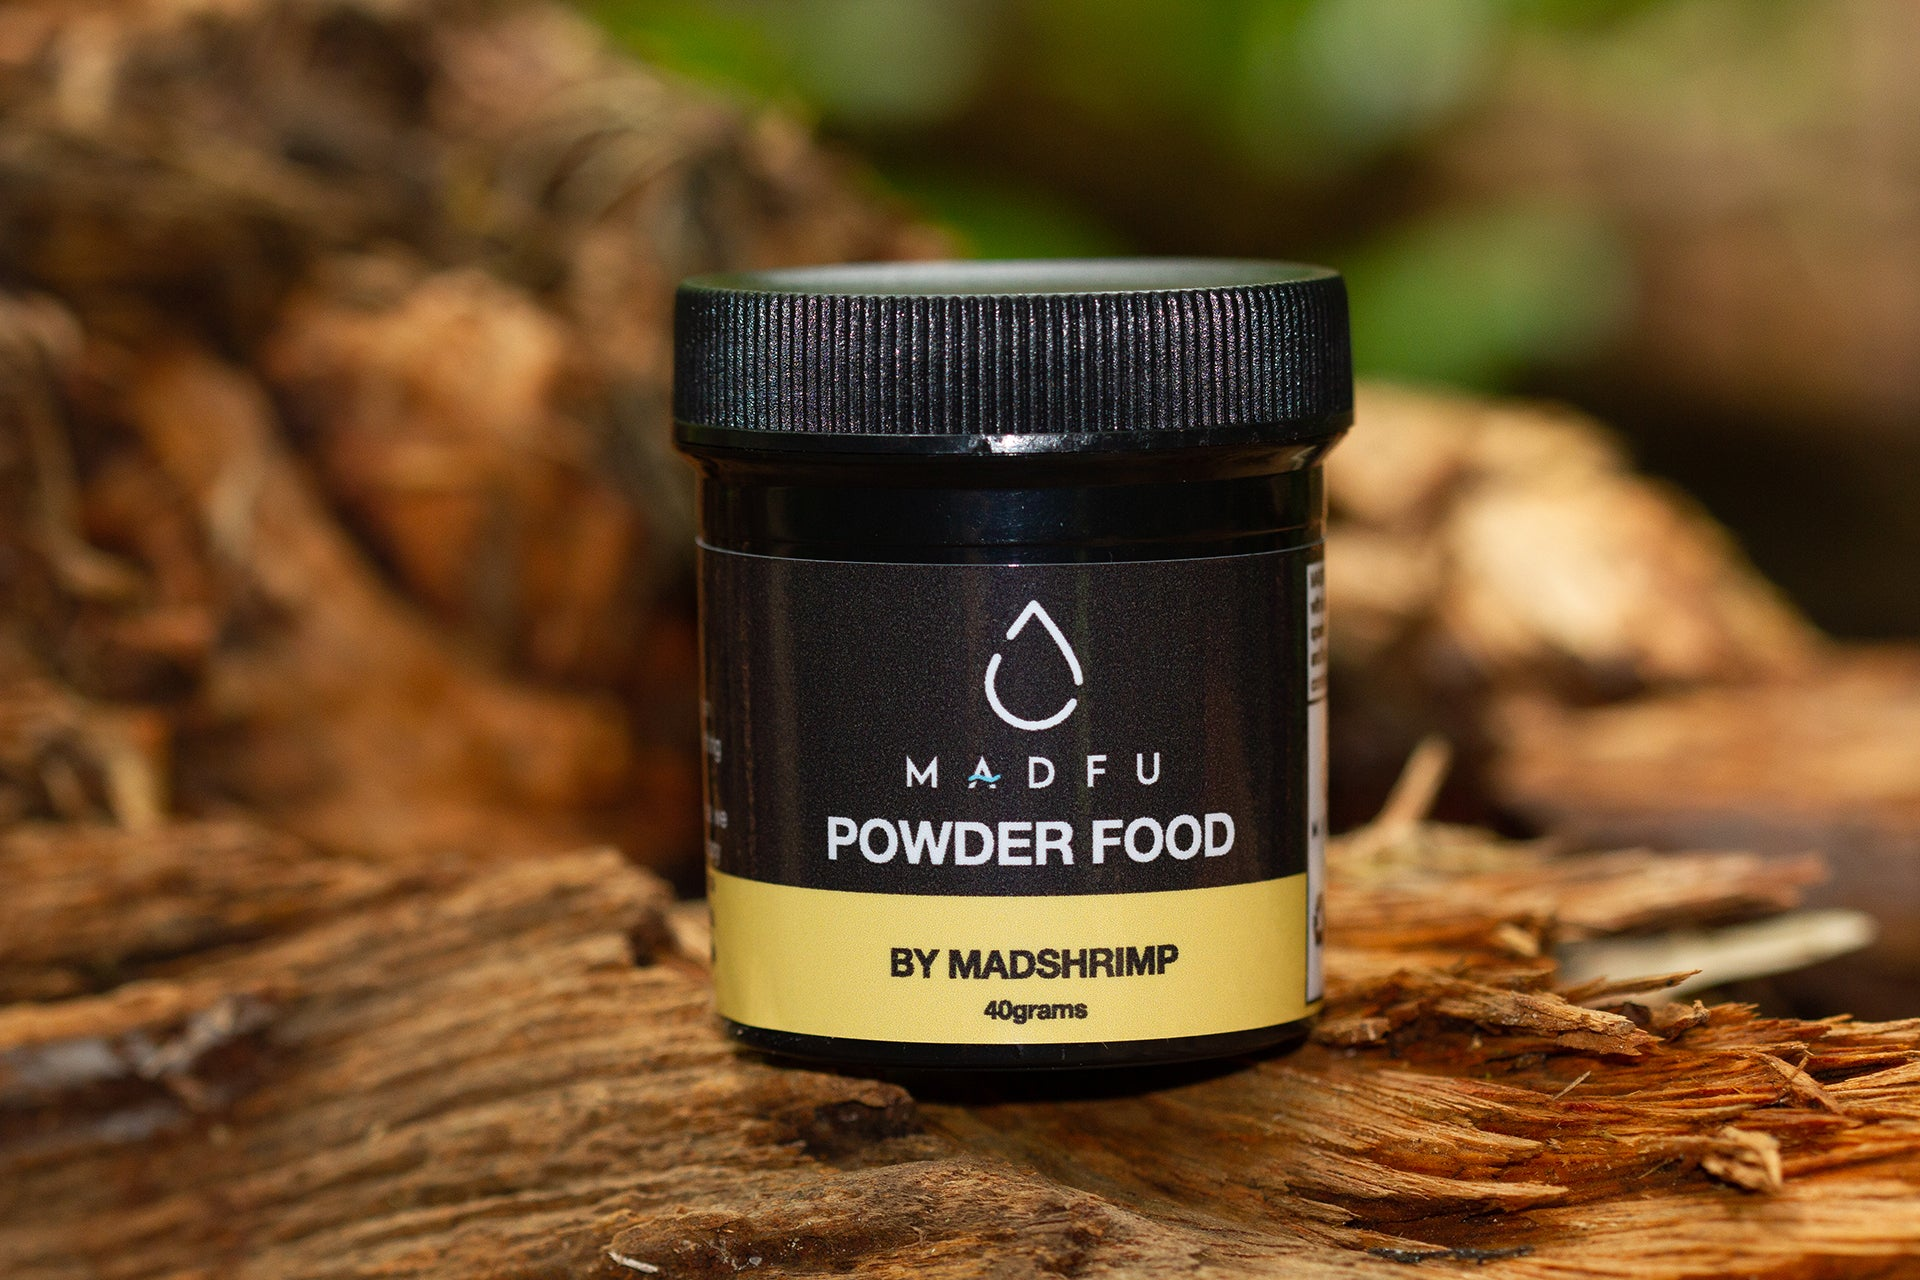 MADFU Powder Food